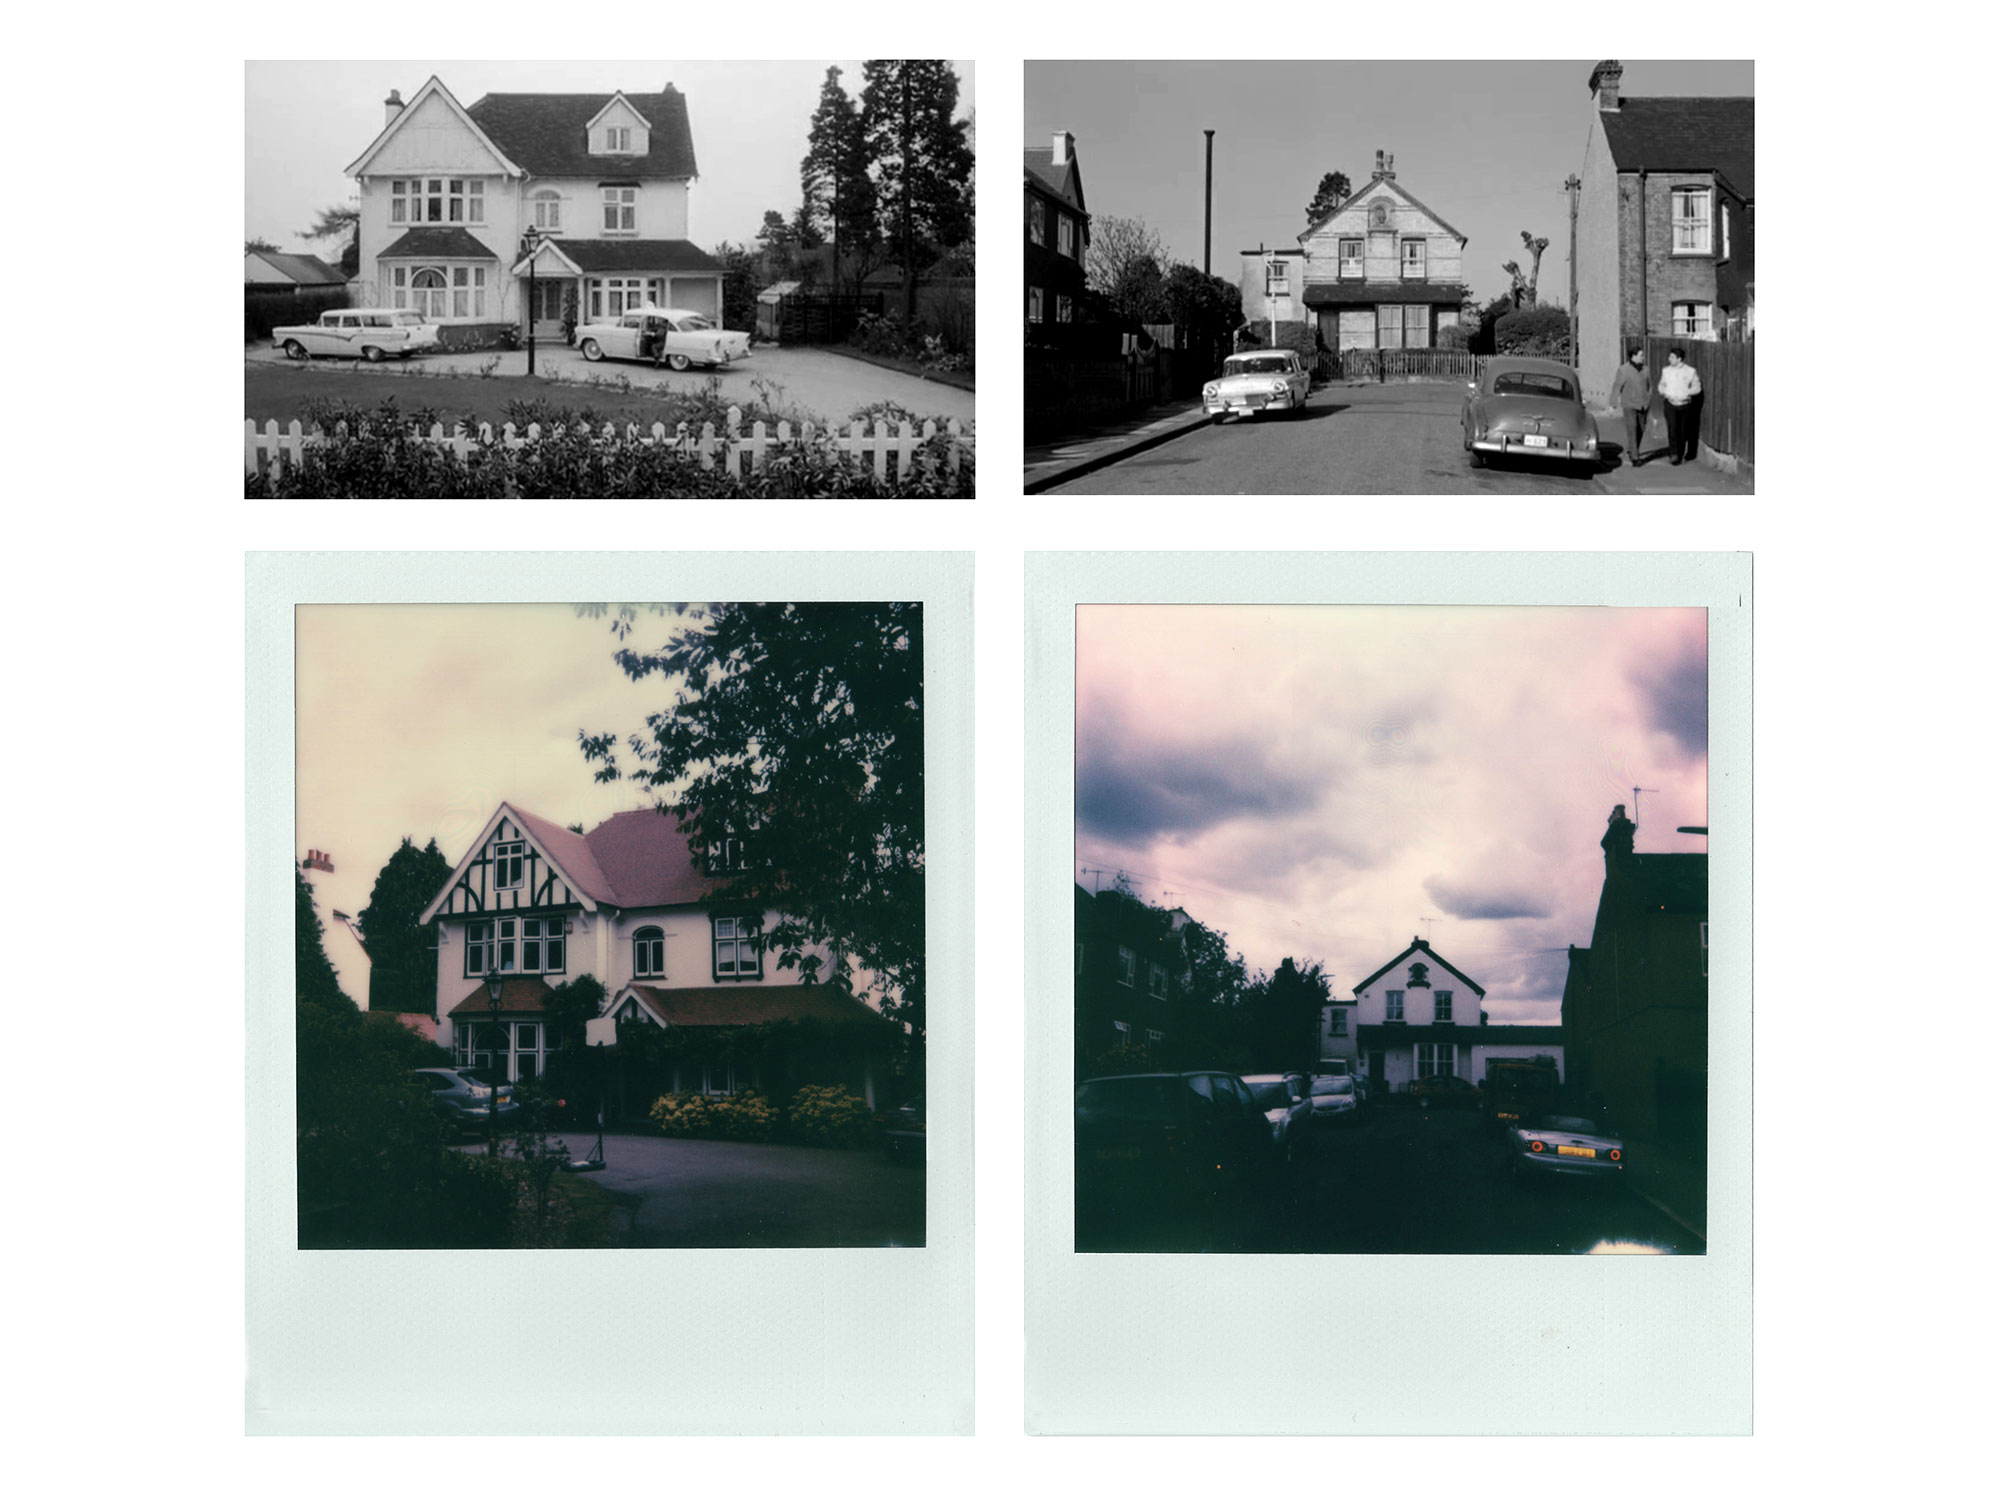 On Location: The houses in Stanley Kubrick's Lolita